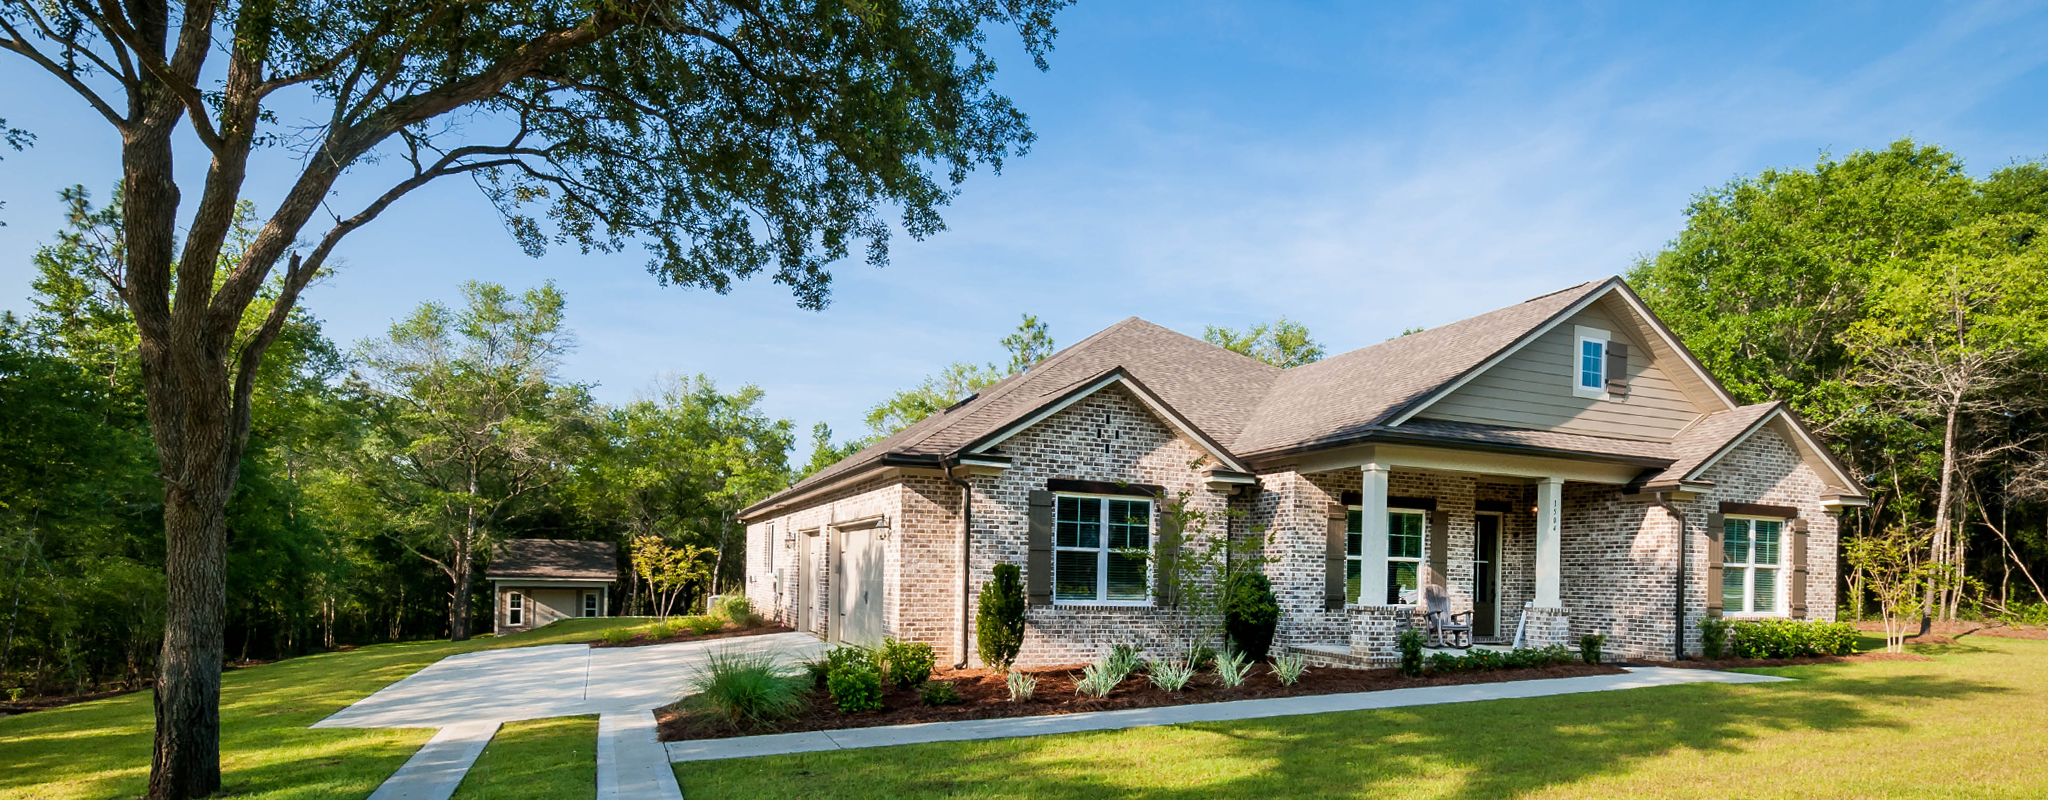 Mill Creek Farms model home front exterior